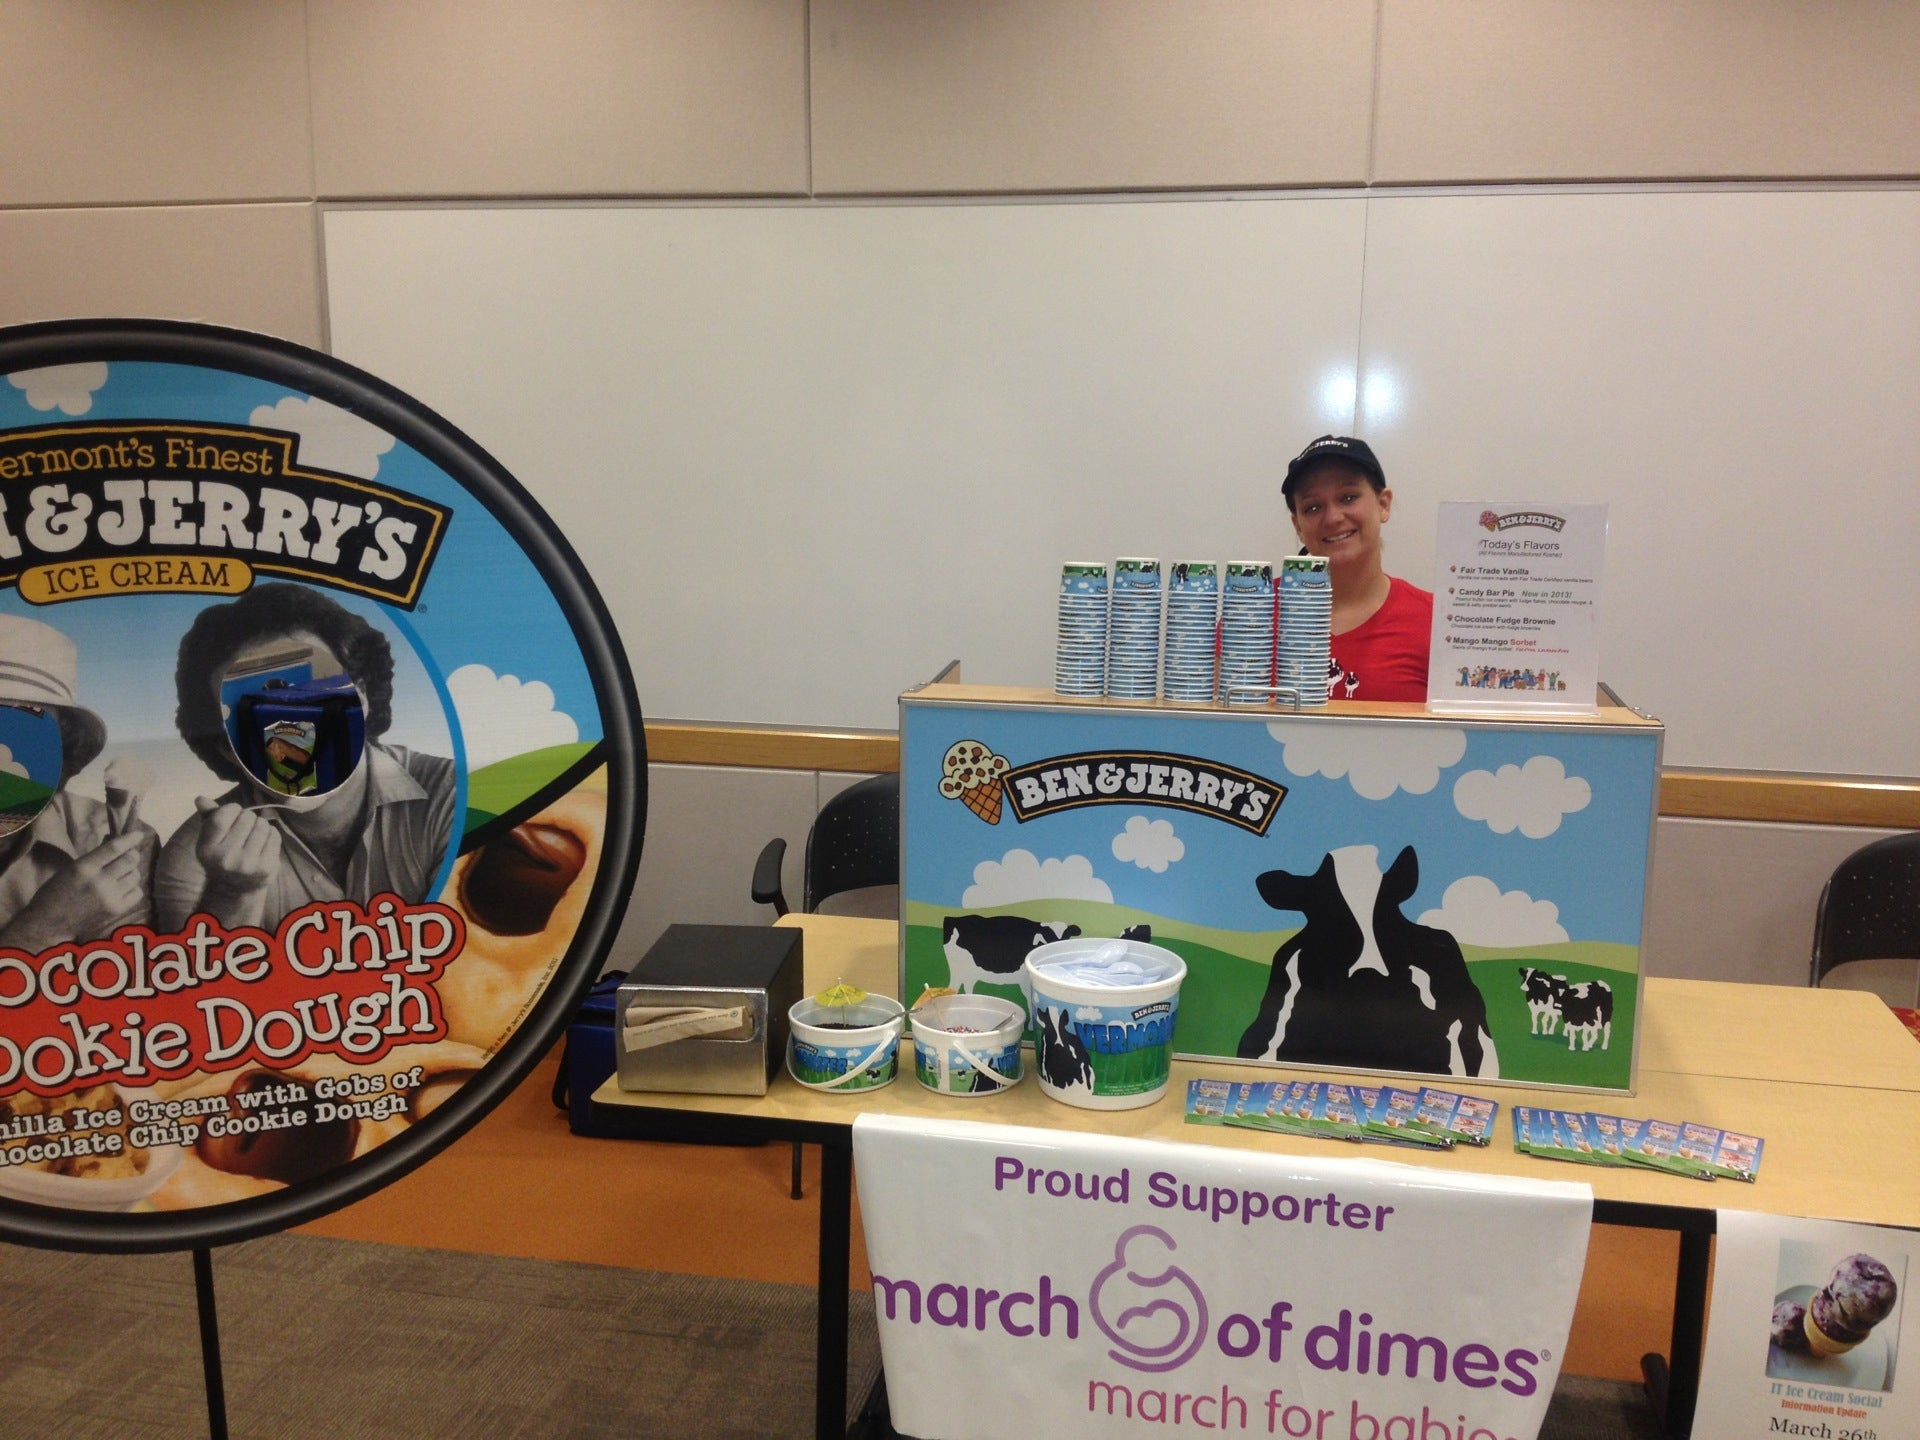 Ben & Jerry's,catering,frozen yogurt,icecream,milkshakes